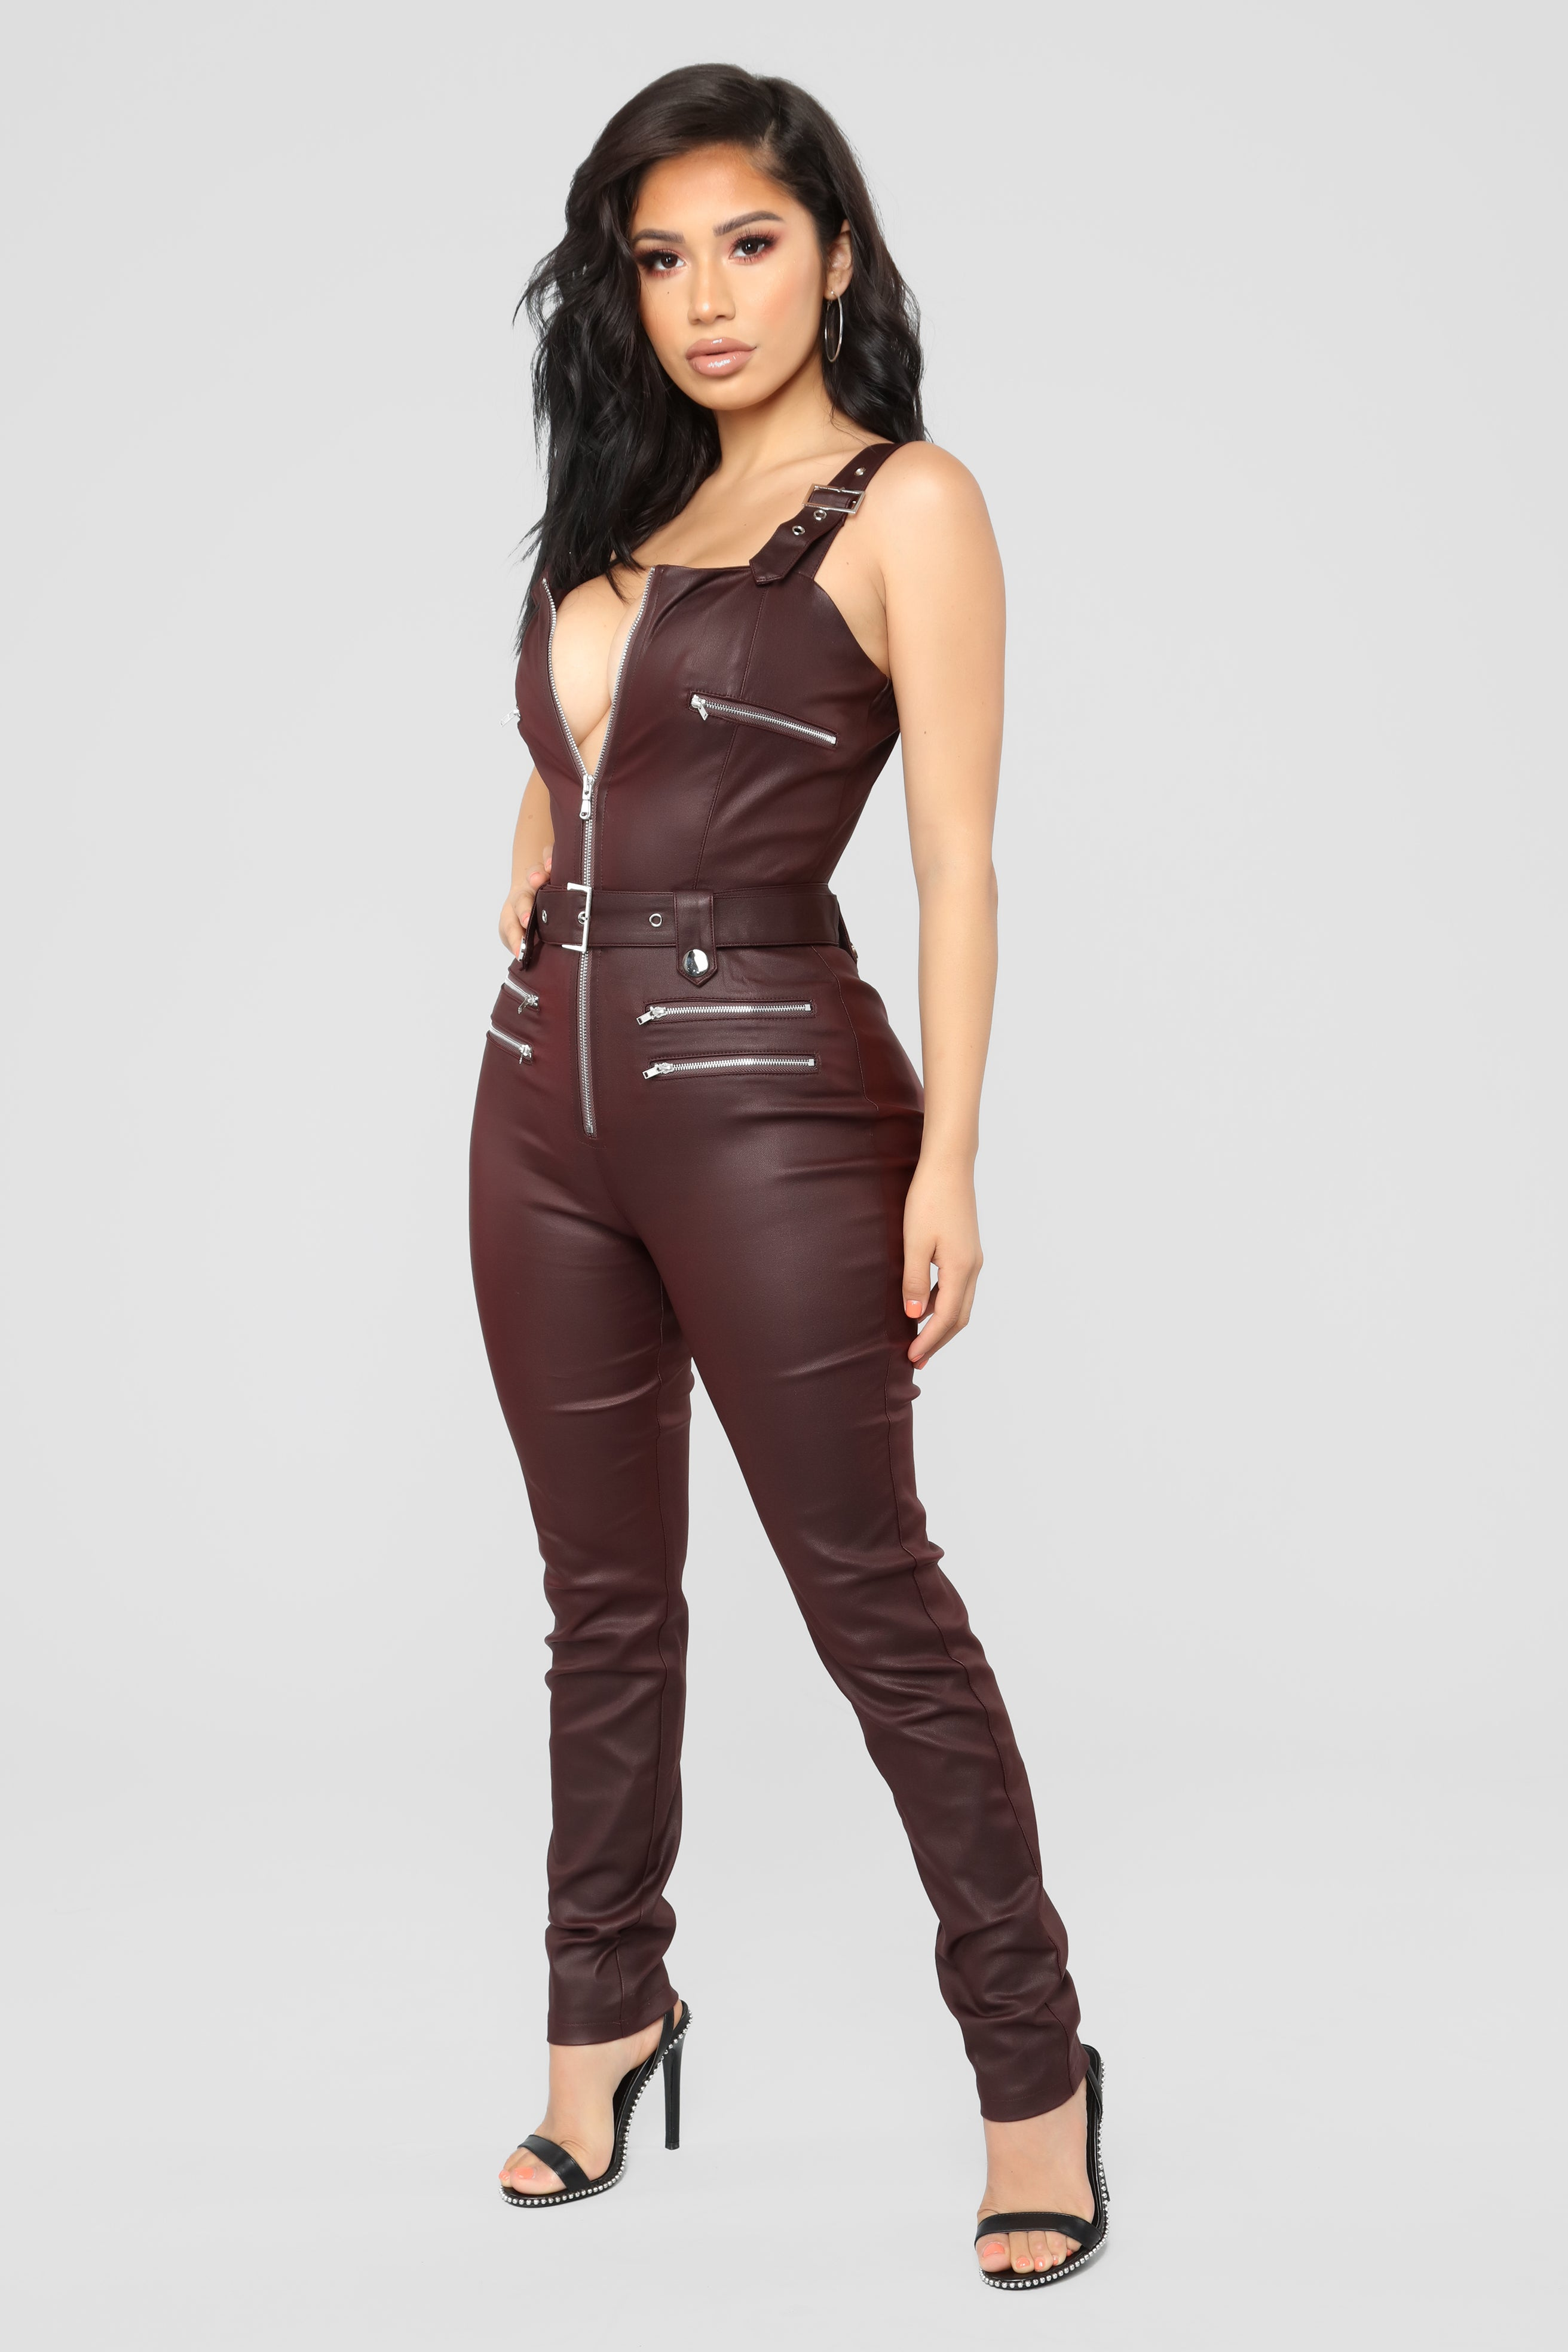 6f8a4b8613c Hunt You Down Overall Jumpsuit - Burgundy